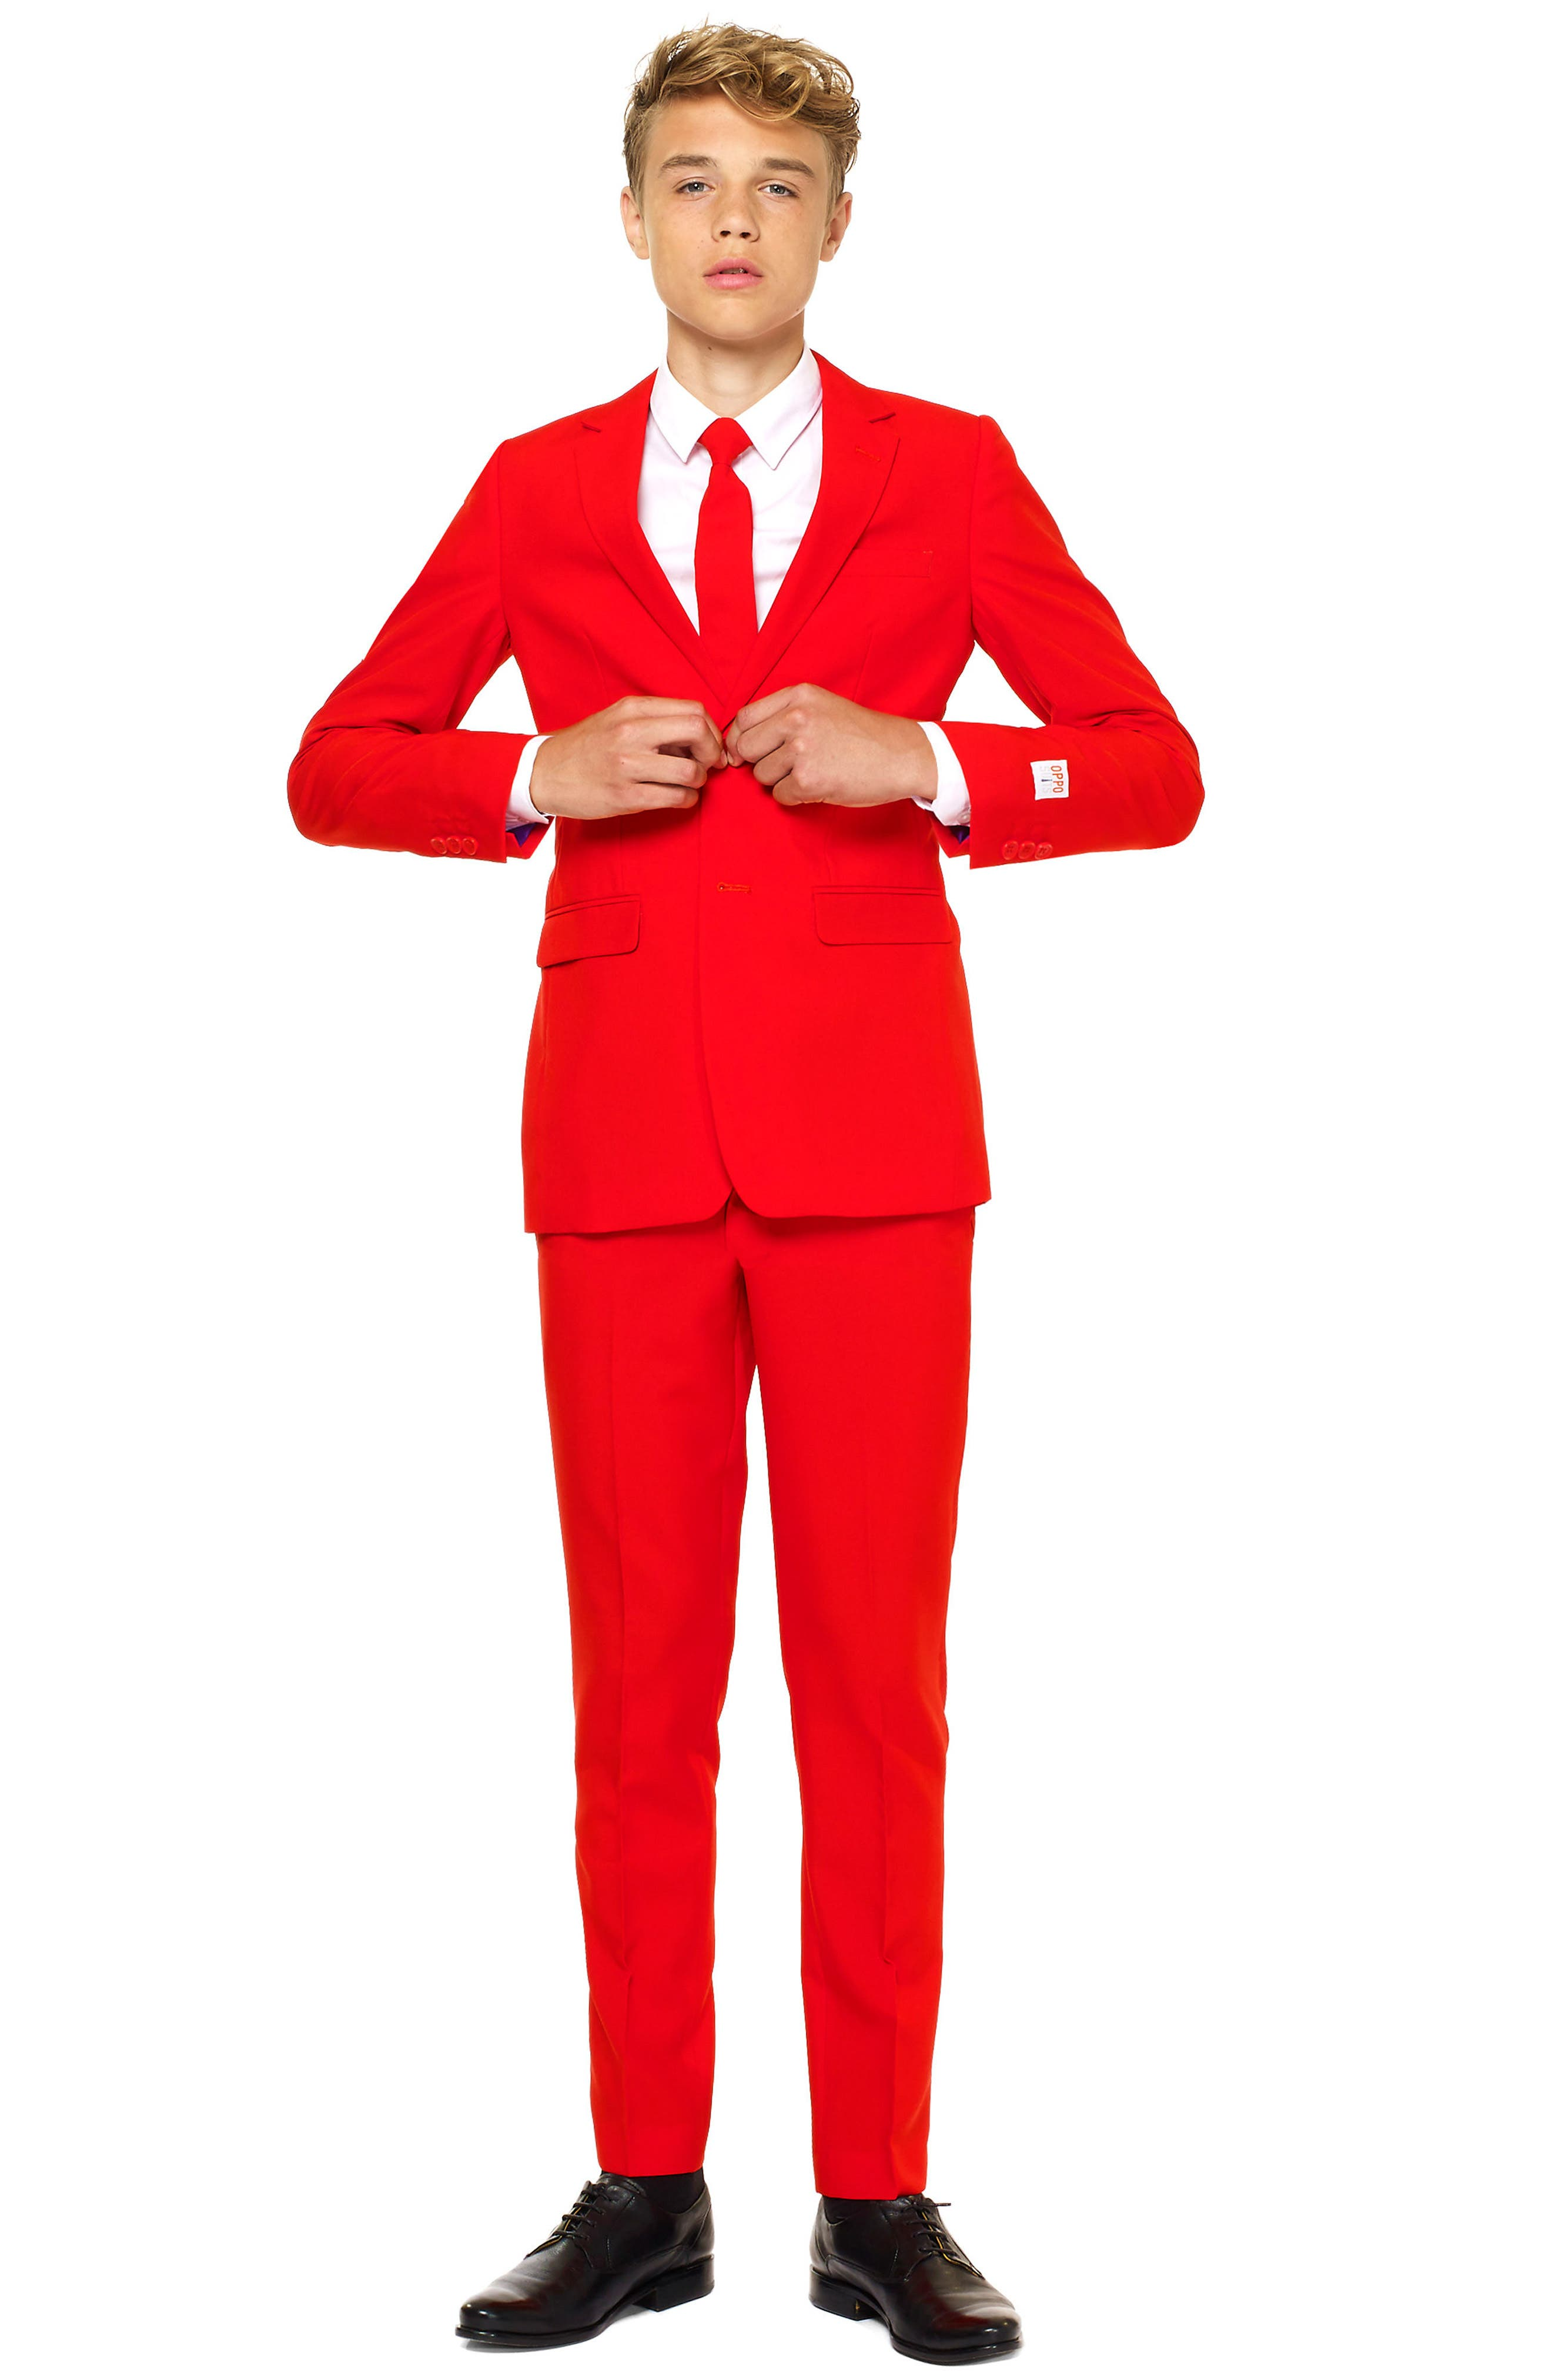 Main Image - Oppo Red Devil Two-Piece Suit with Tie (Big Boys)